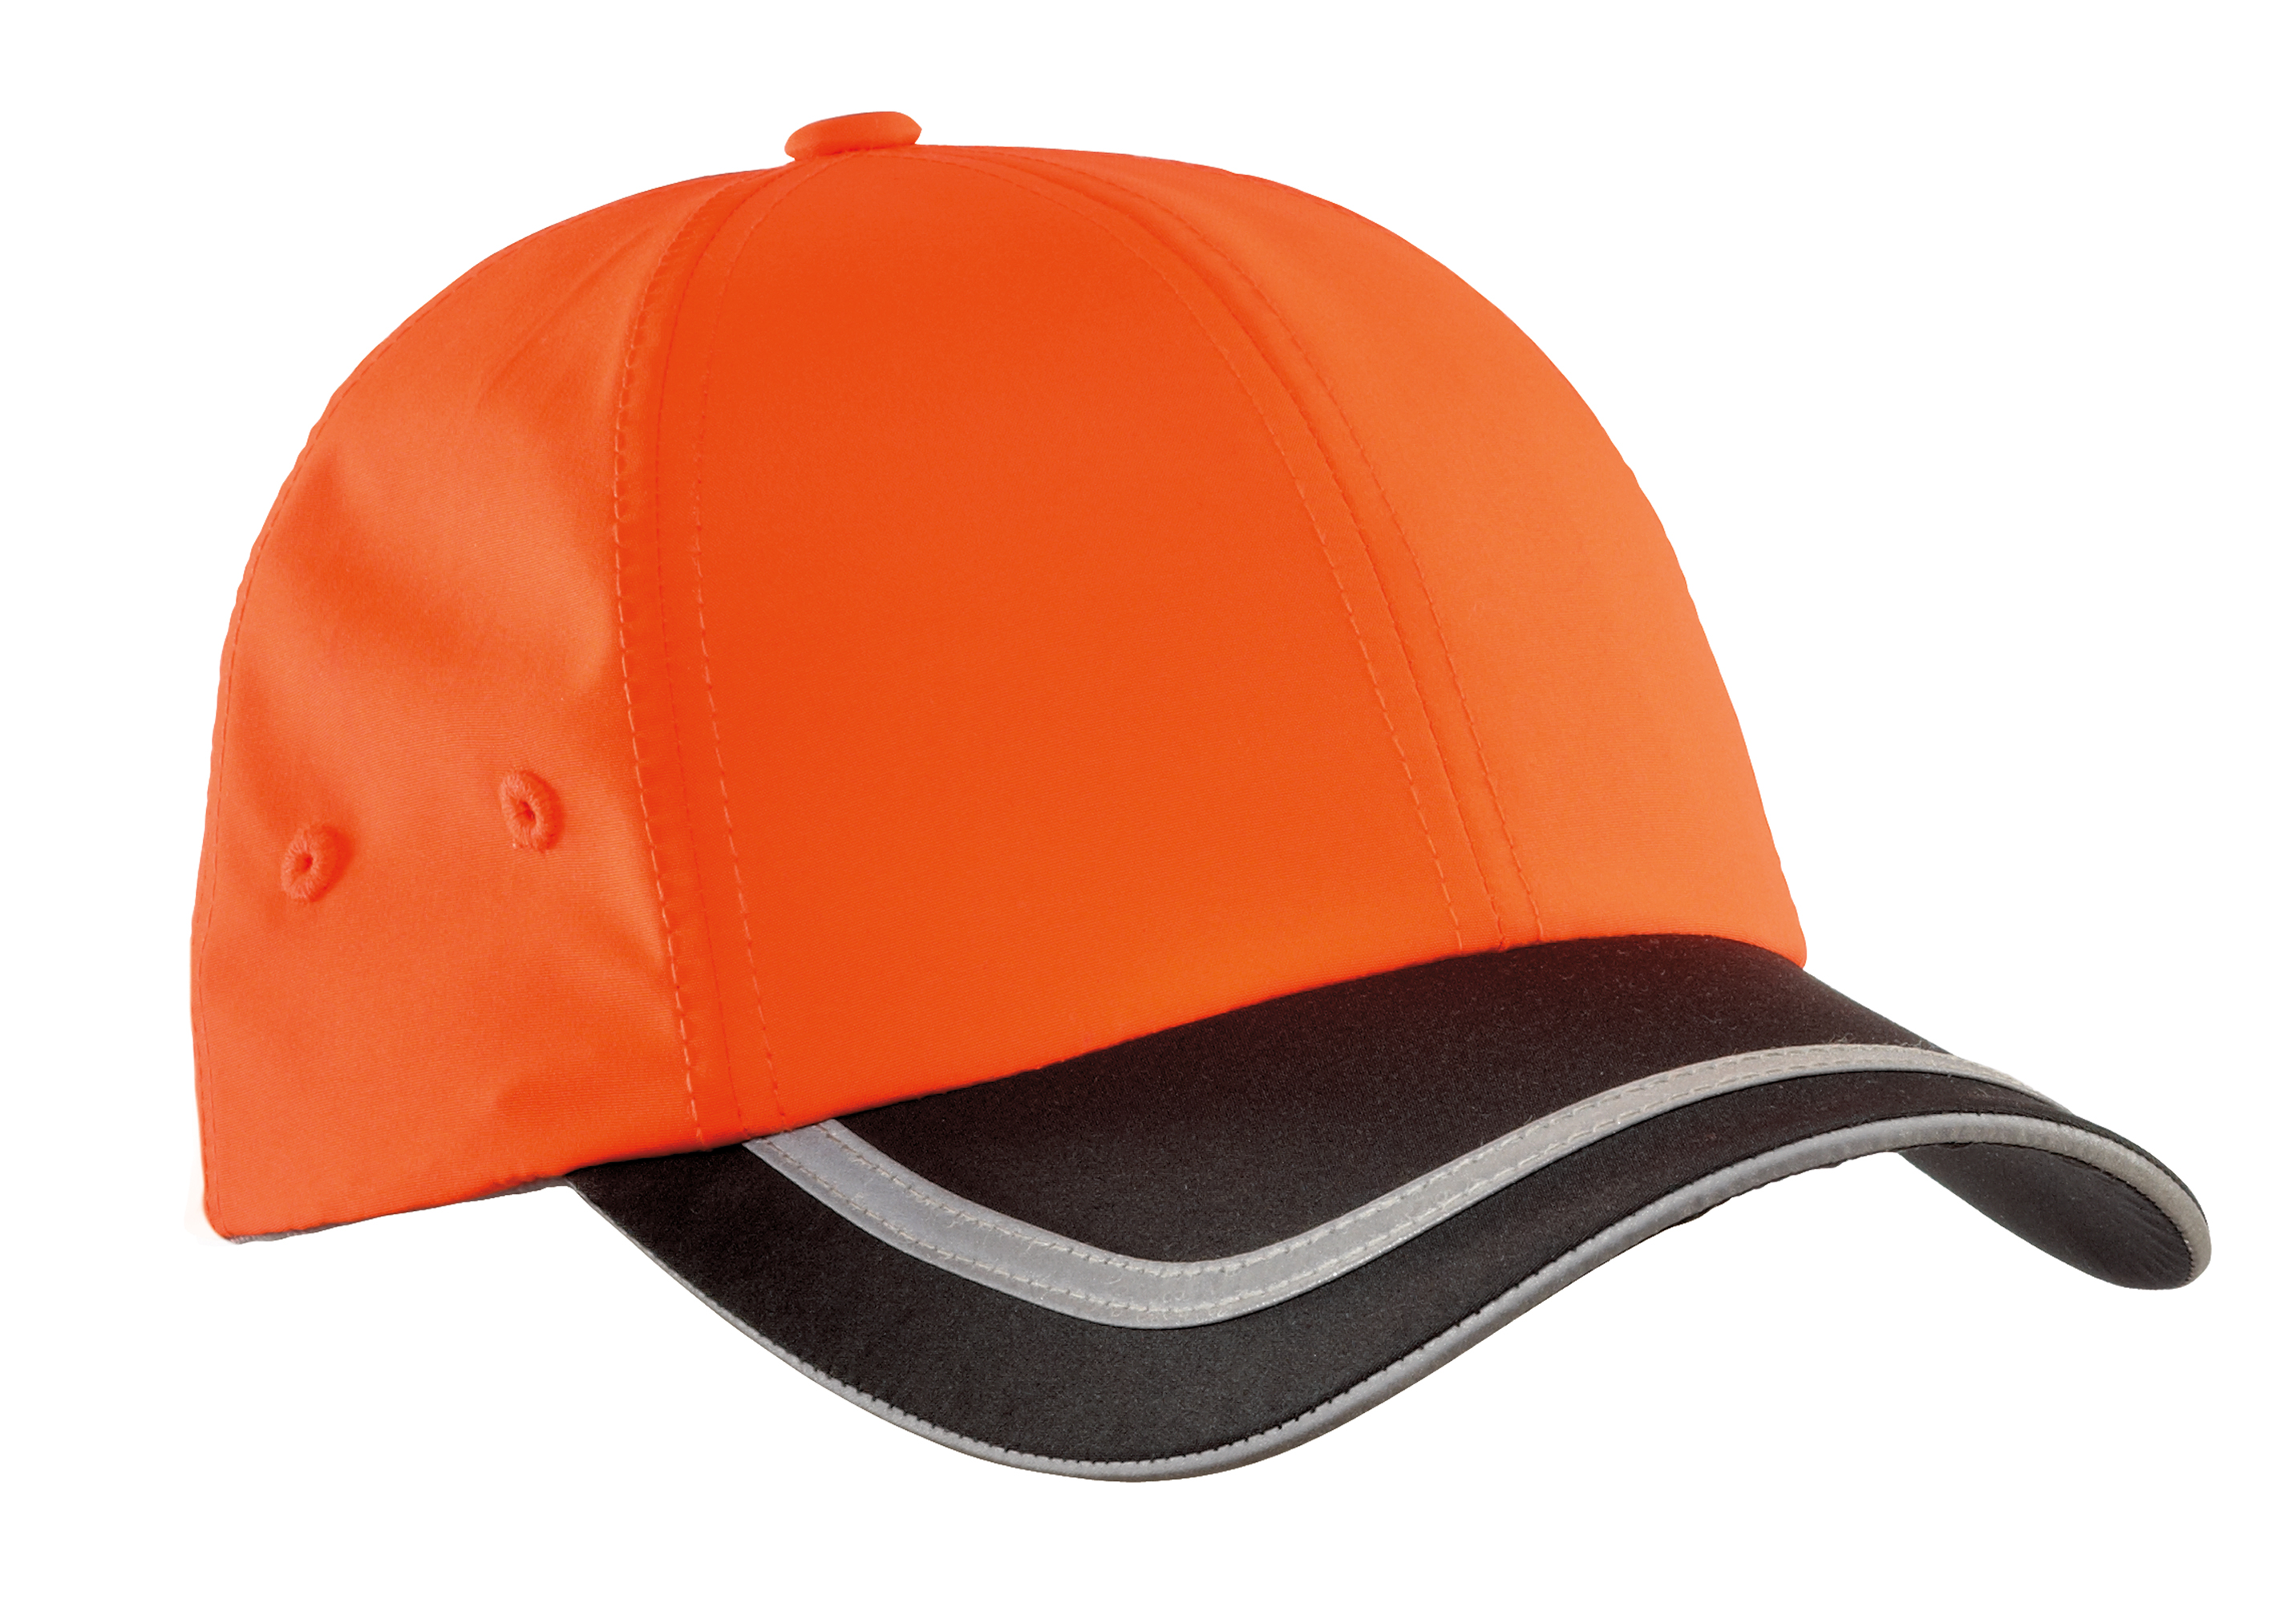 safety hat orange and black